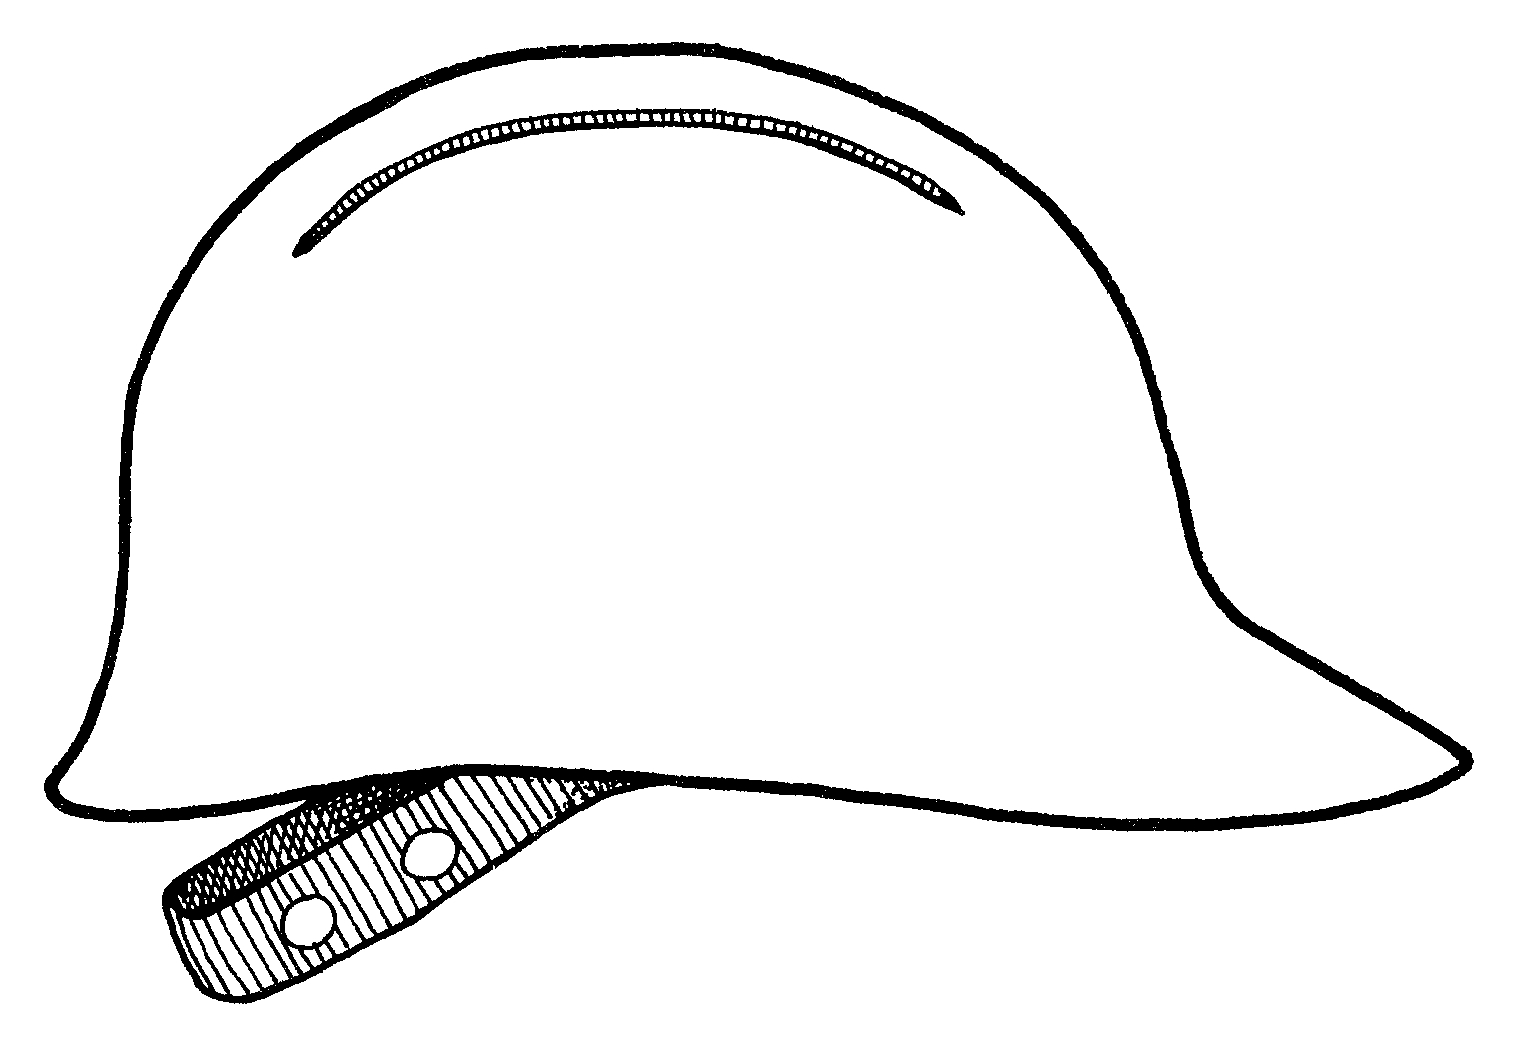 army helmet coloring page football helmet drawing free download on clipartmag helmet army page coloring